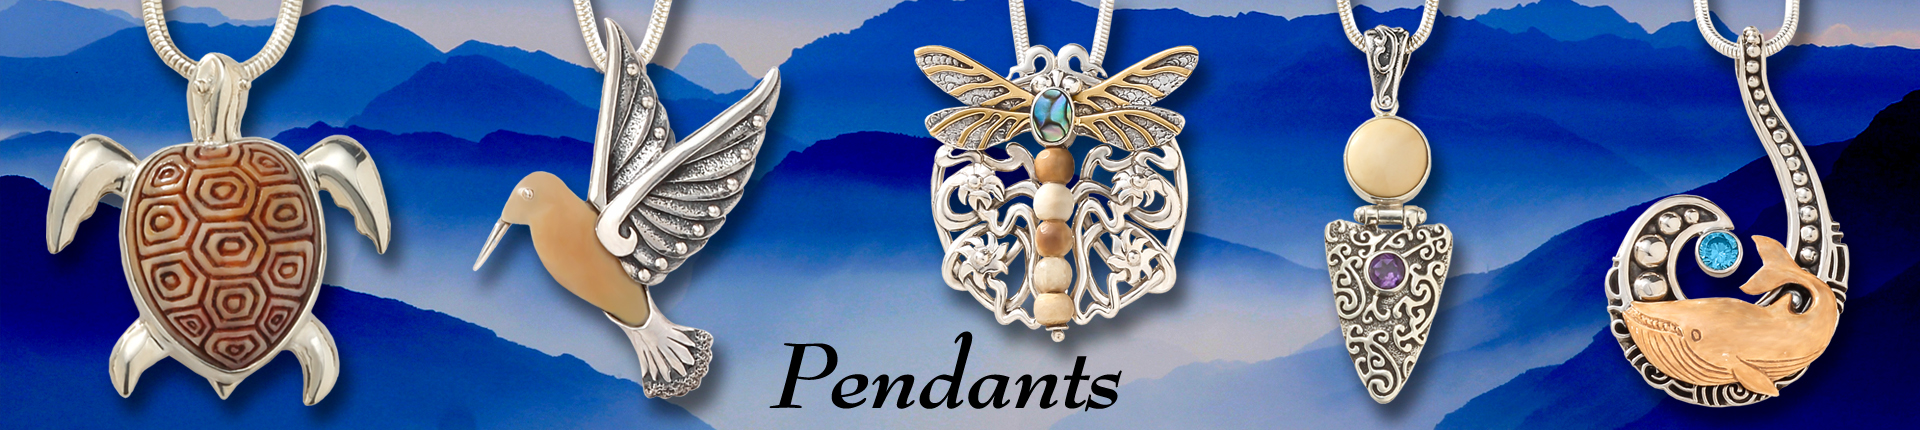 Zealandia sterling silver pendants, fossilized ivory jewelry